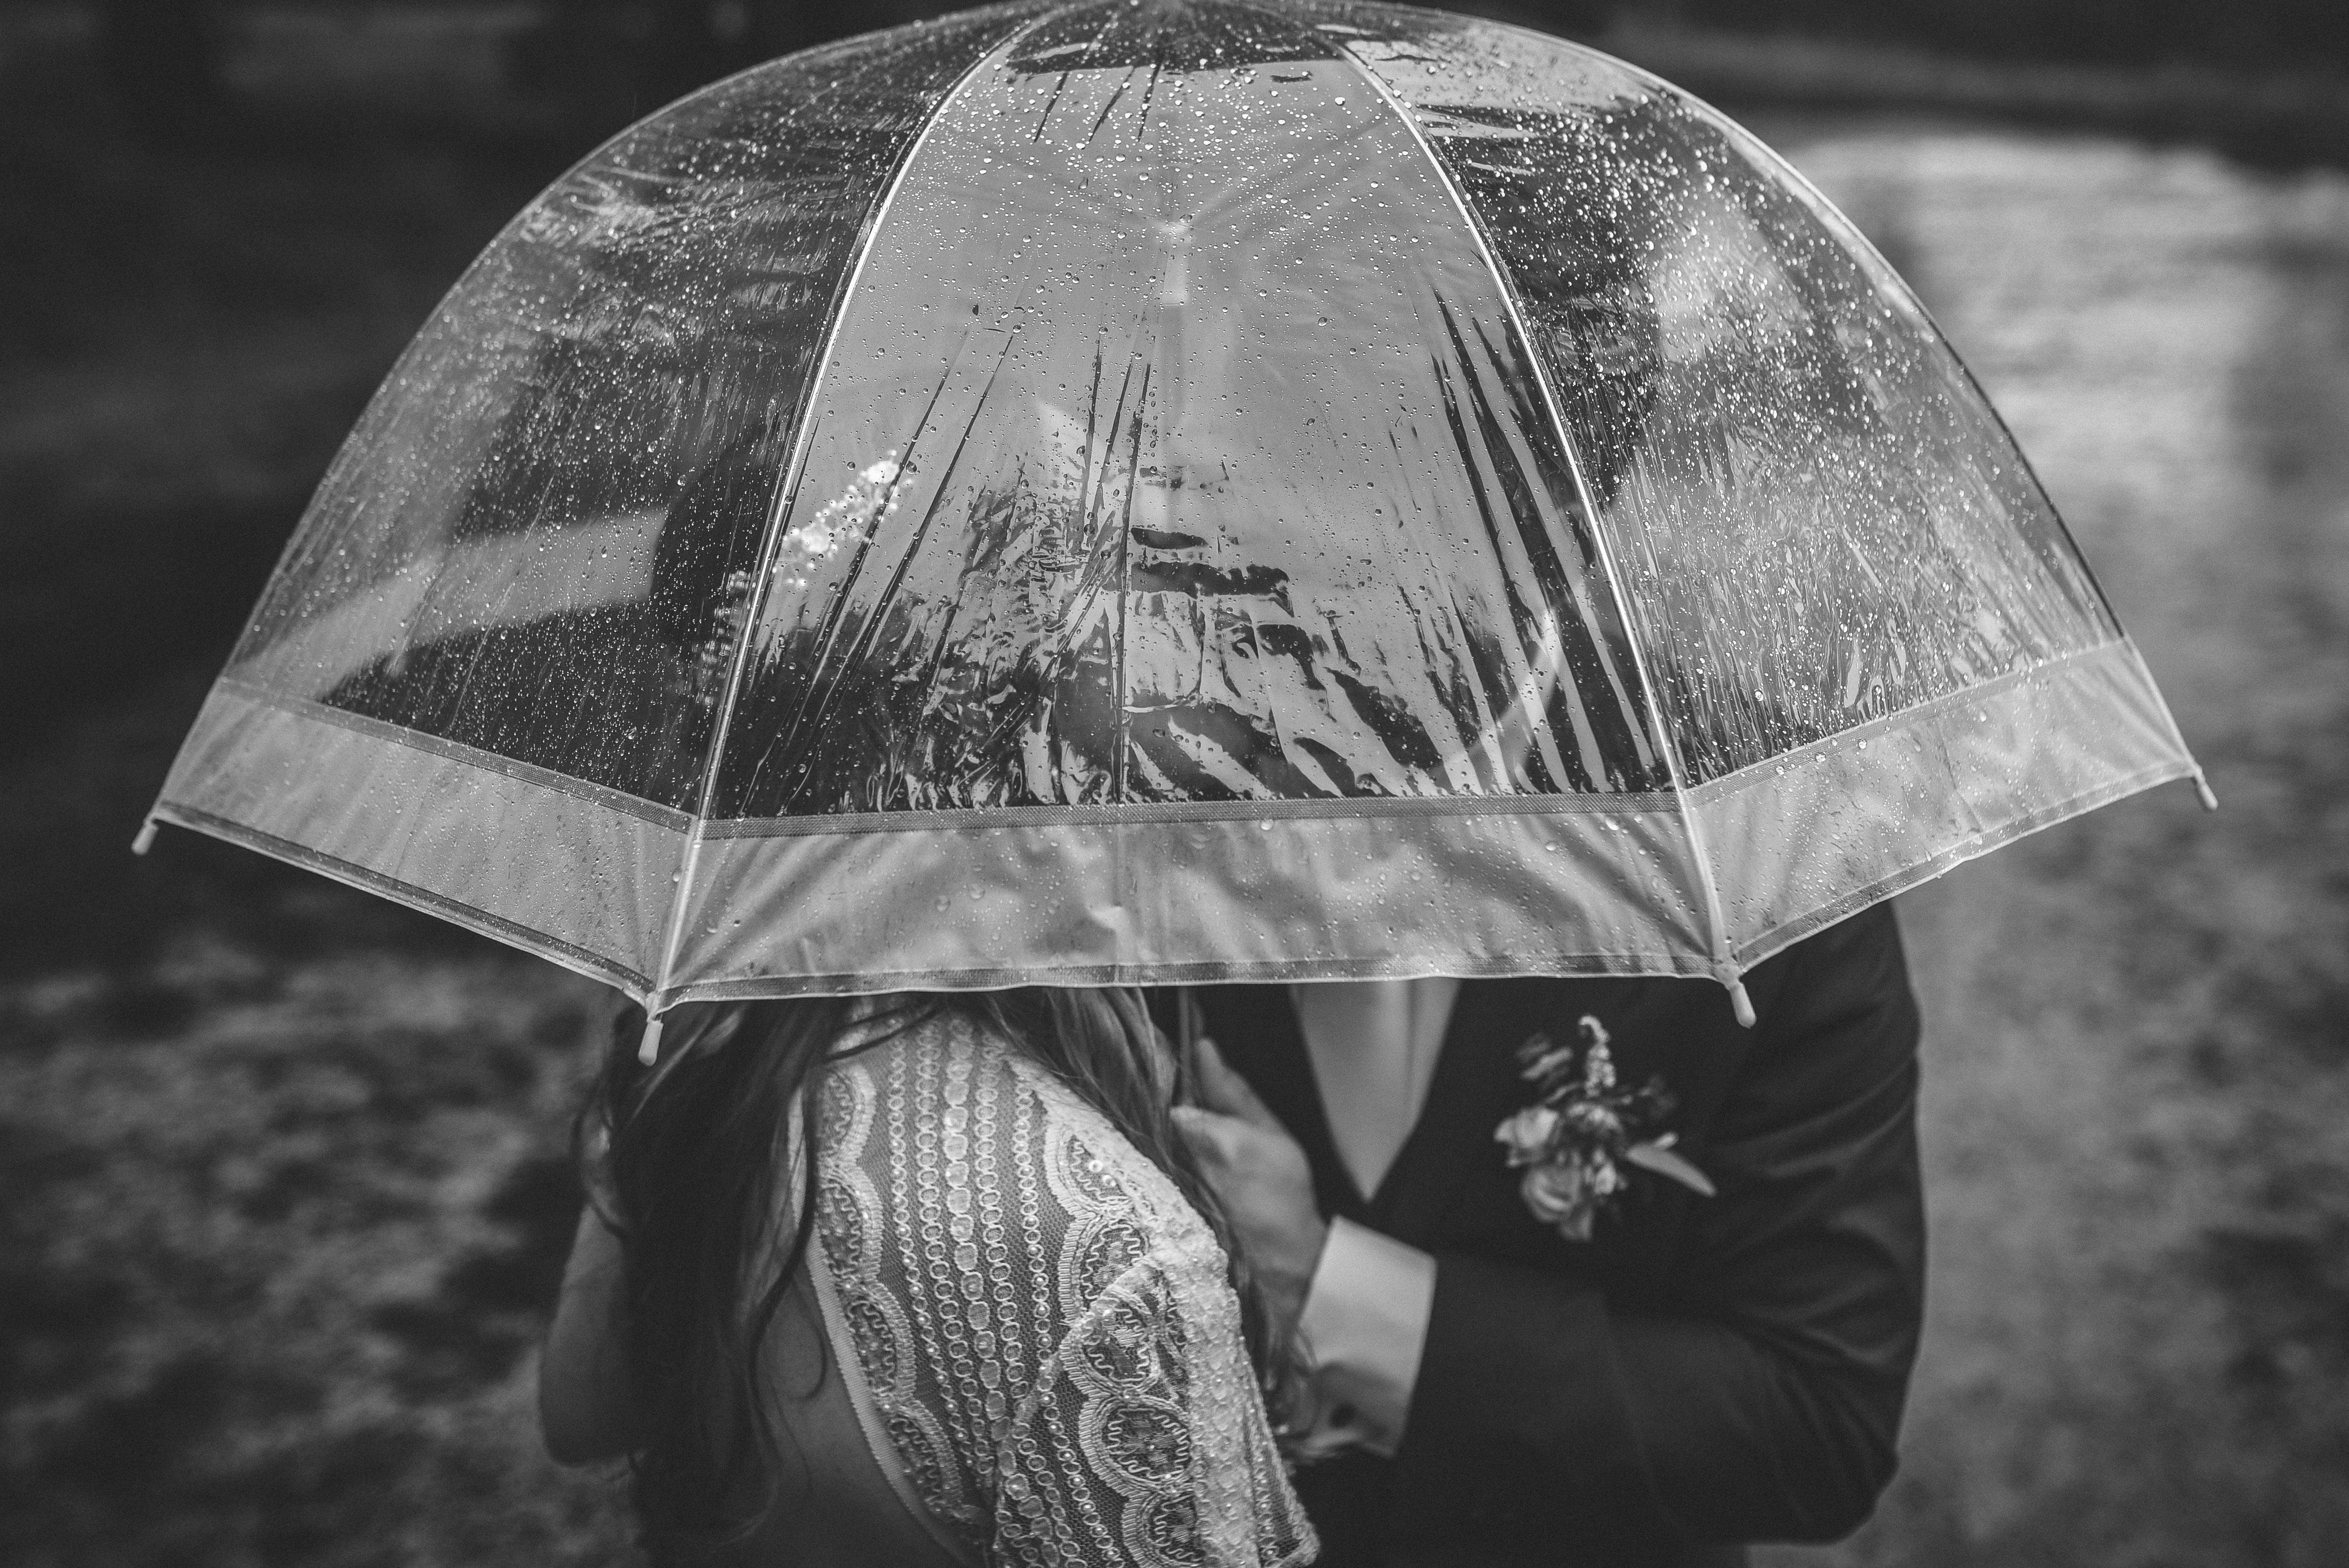 Couple kiss under an umbrella. Romantic rainy london wedding photography ideas.